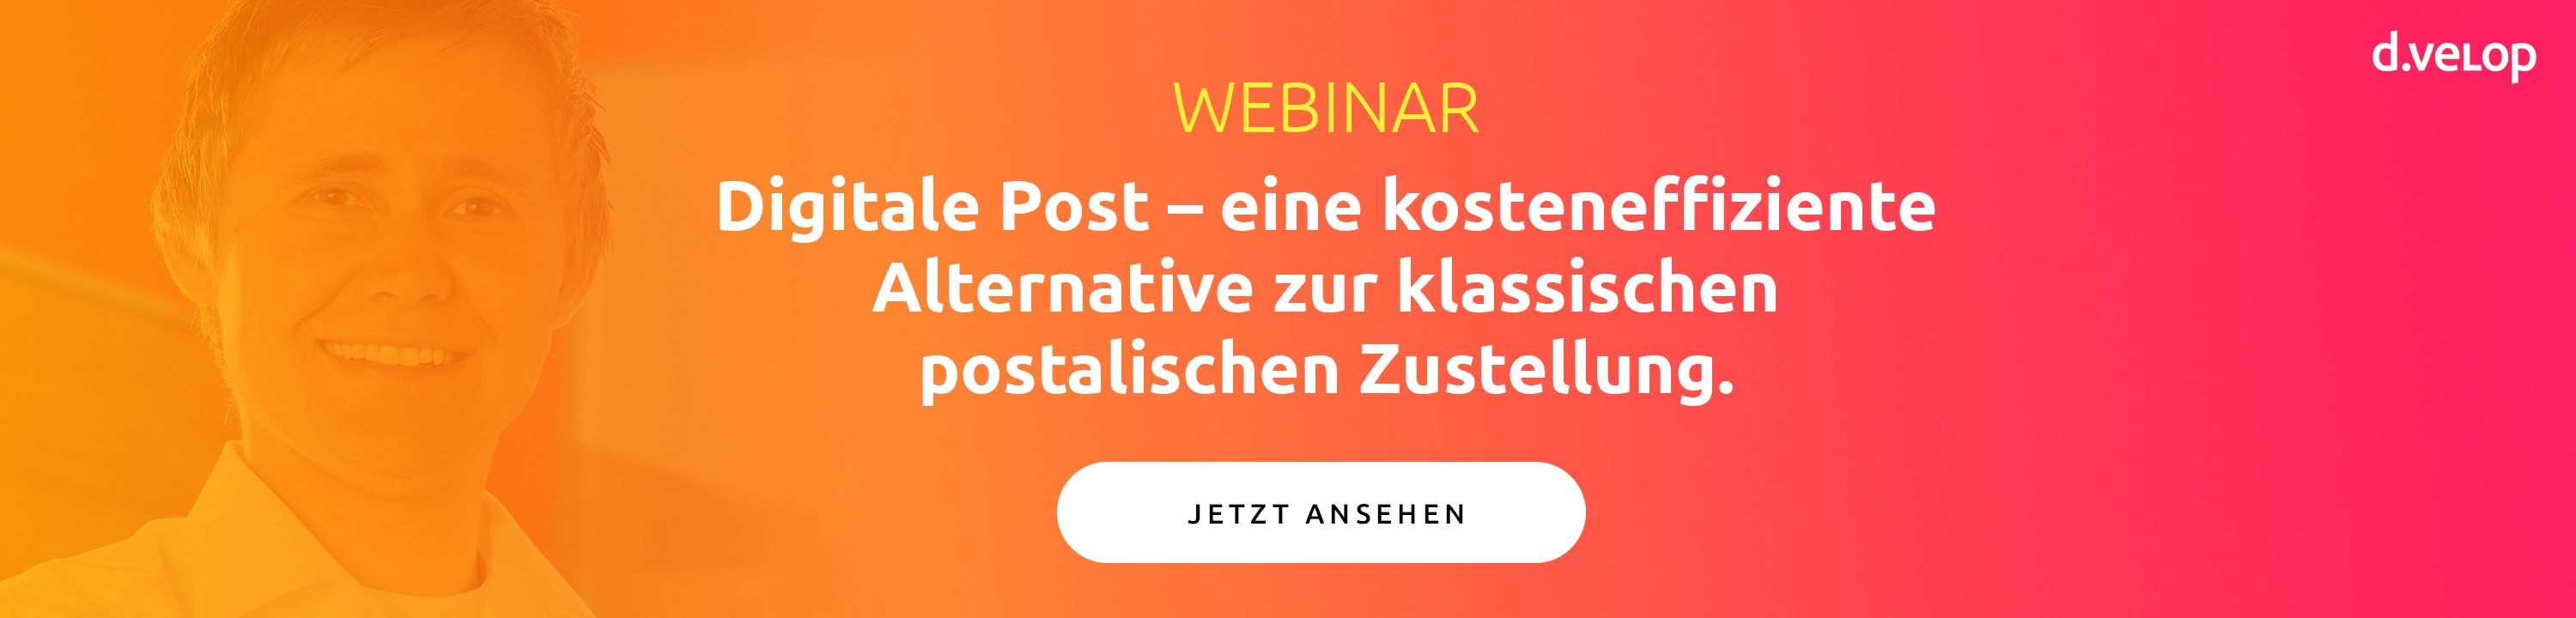 Webinar digitale Post